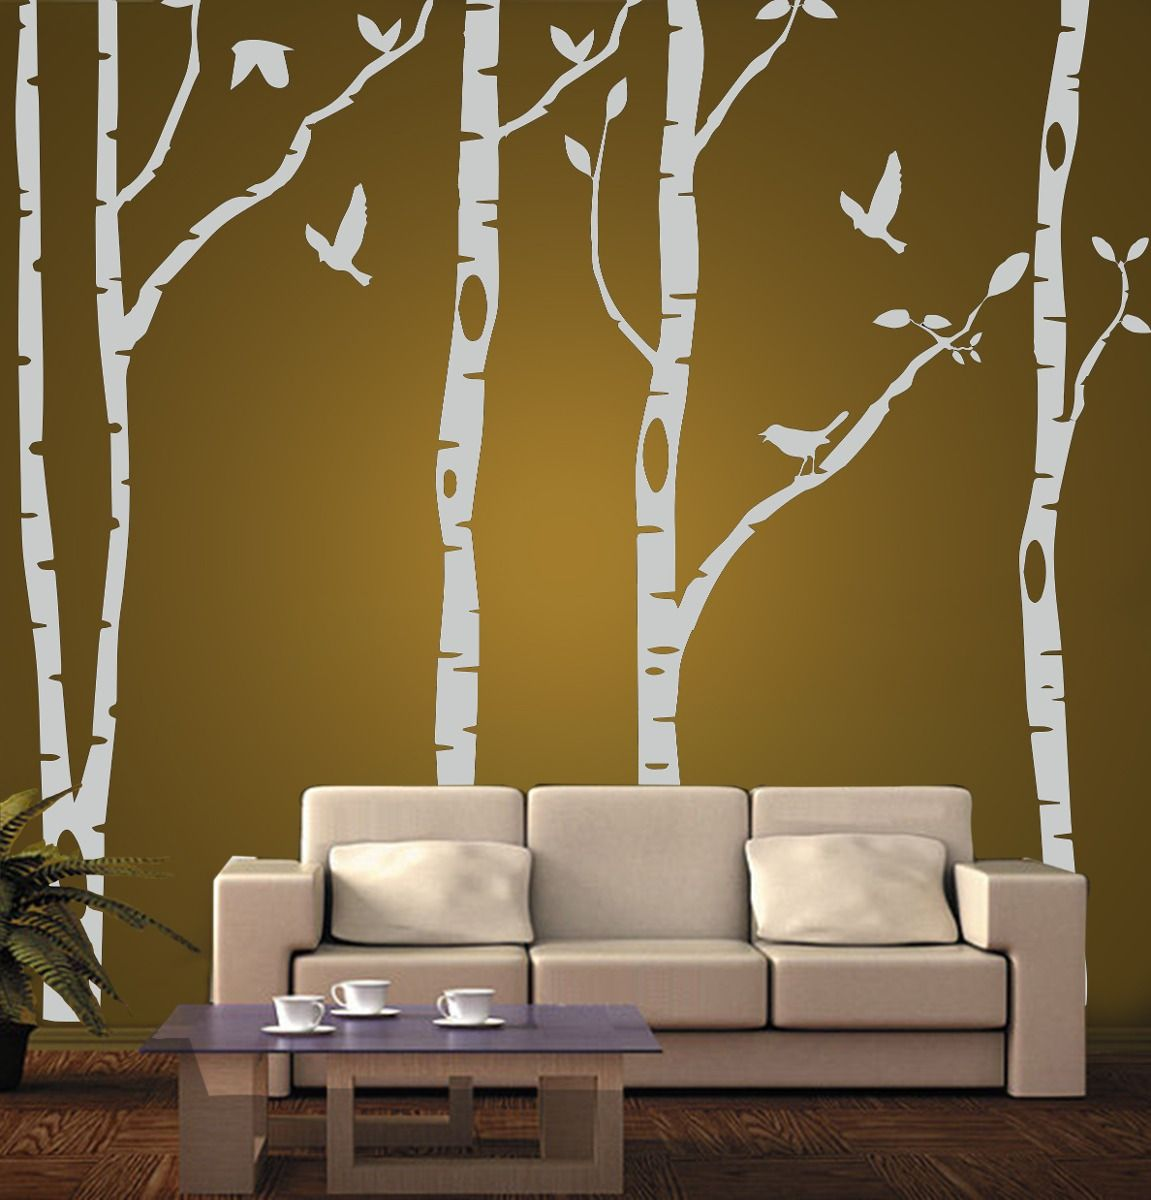 25 best ideas about vinilos de arboles on pinterest murales de pared de rboles vinilos